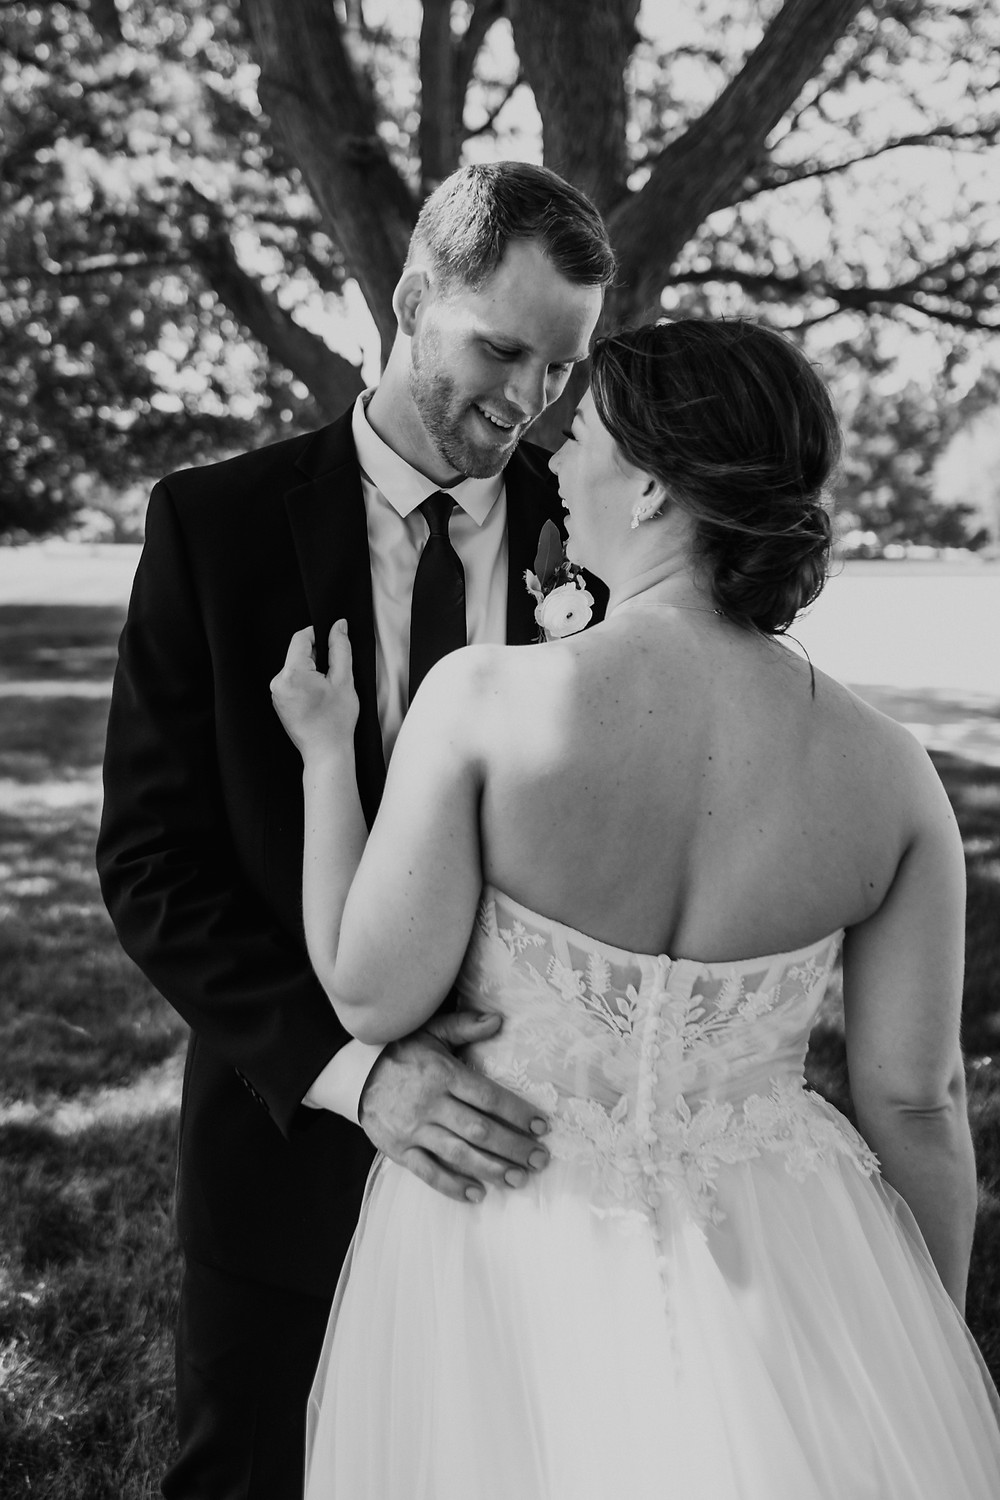 Black and white wedding photography. Photographed by Nicole Leanne Photography.